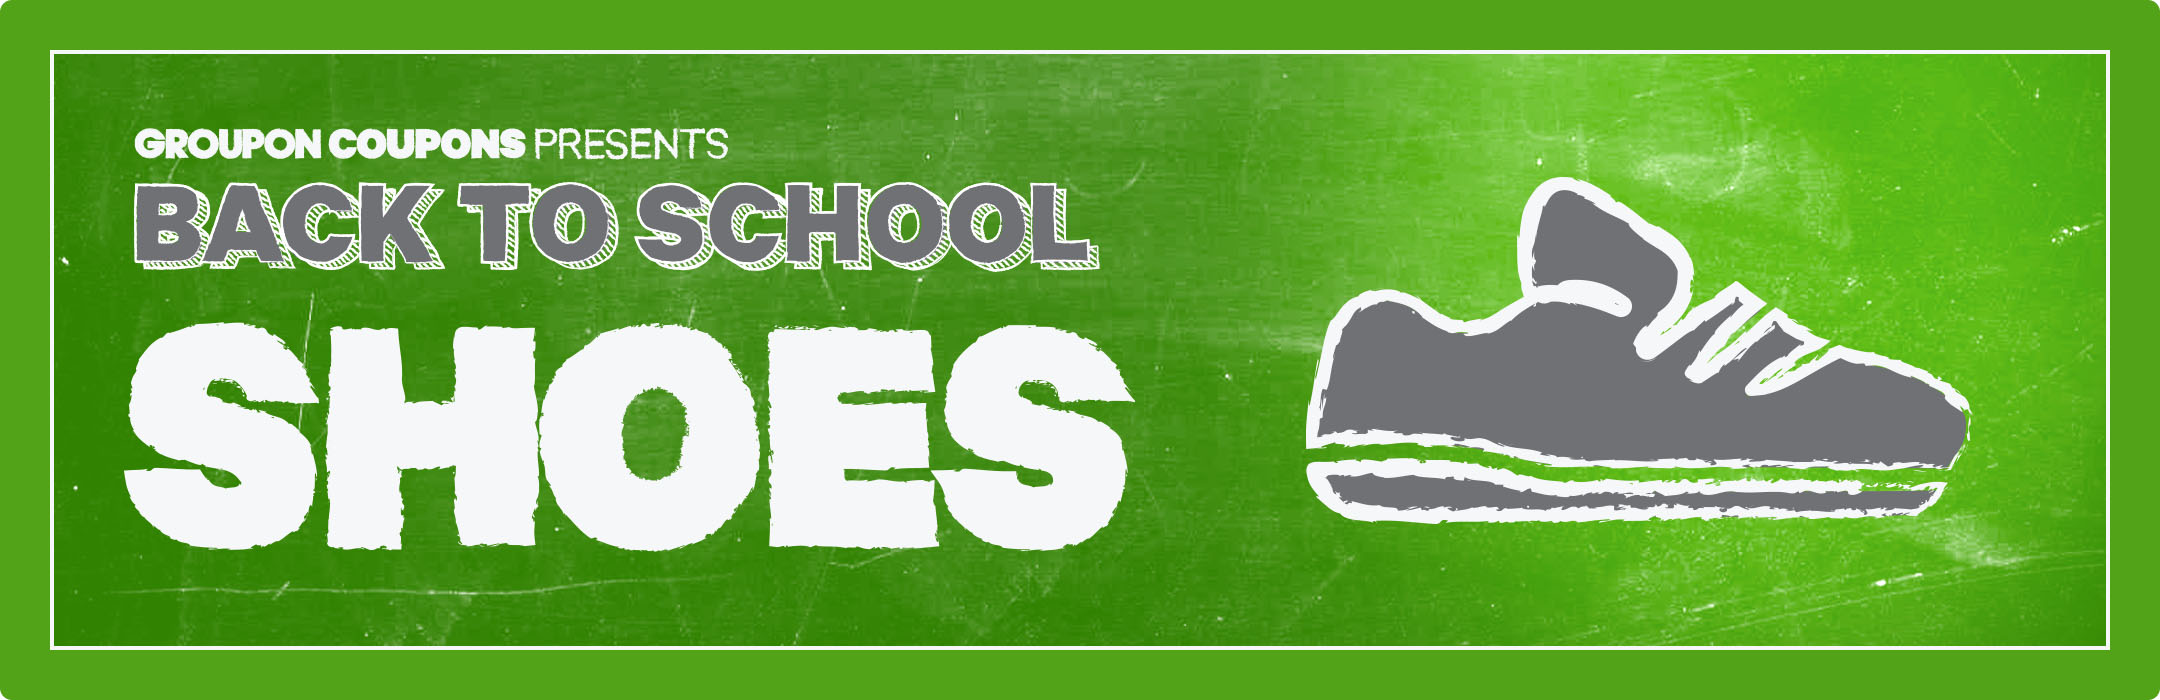 Back to School Savings on Shoes, Groupon Coupons